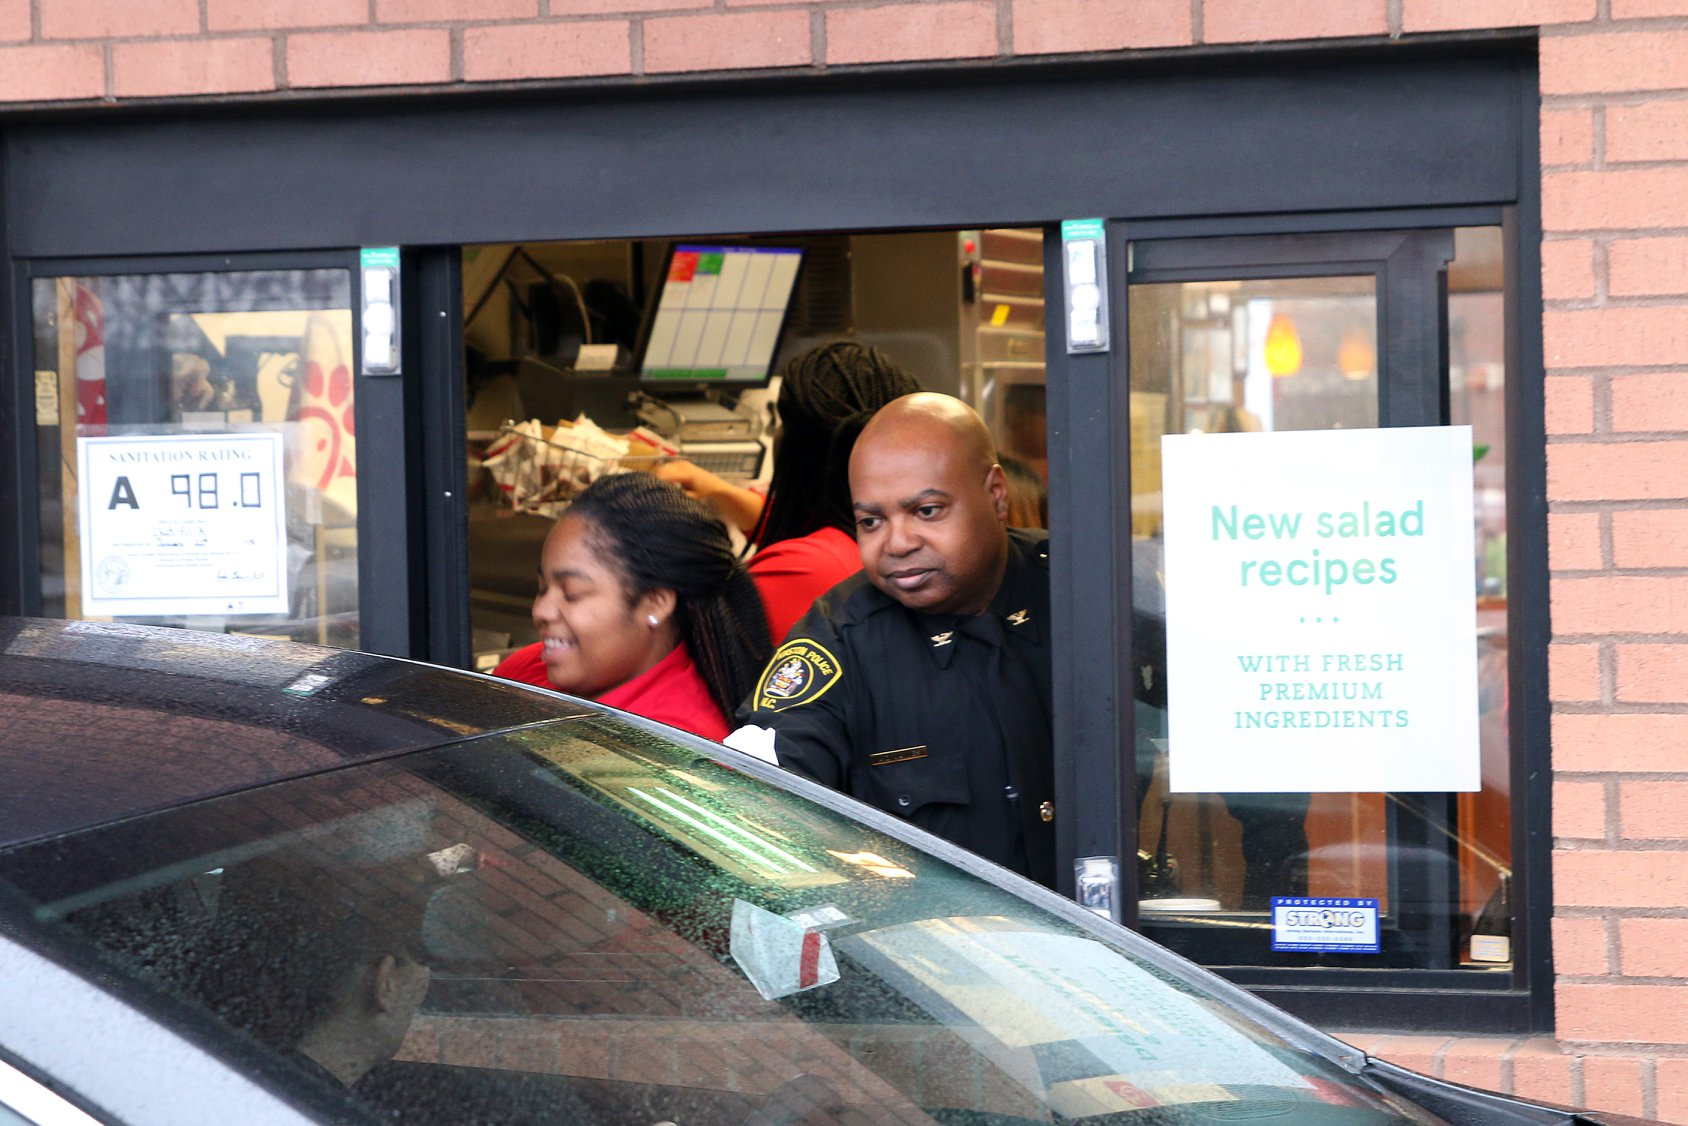 Kinston Police Chief Alonzo Jaynes works the drive thru window during a community relations event held at Chick-fil-A. Submitted photo.